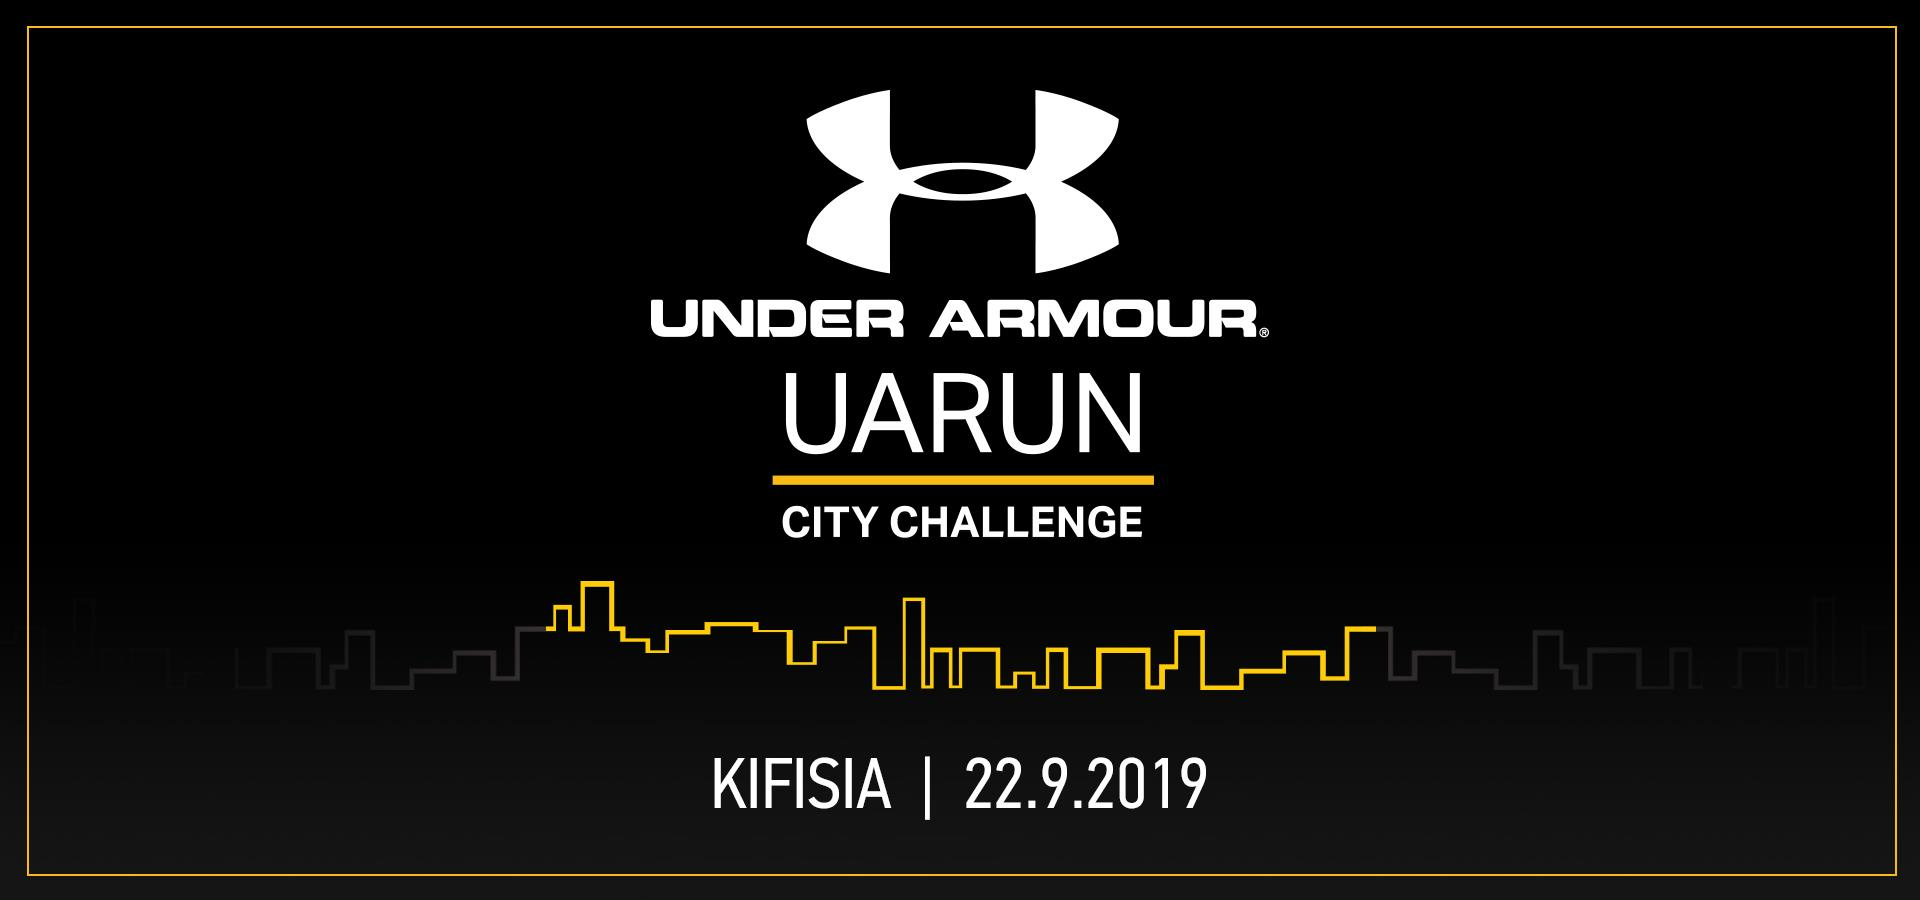 UNDER ARMOUR KIFISIA CITY CHALLENGE